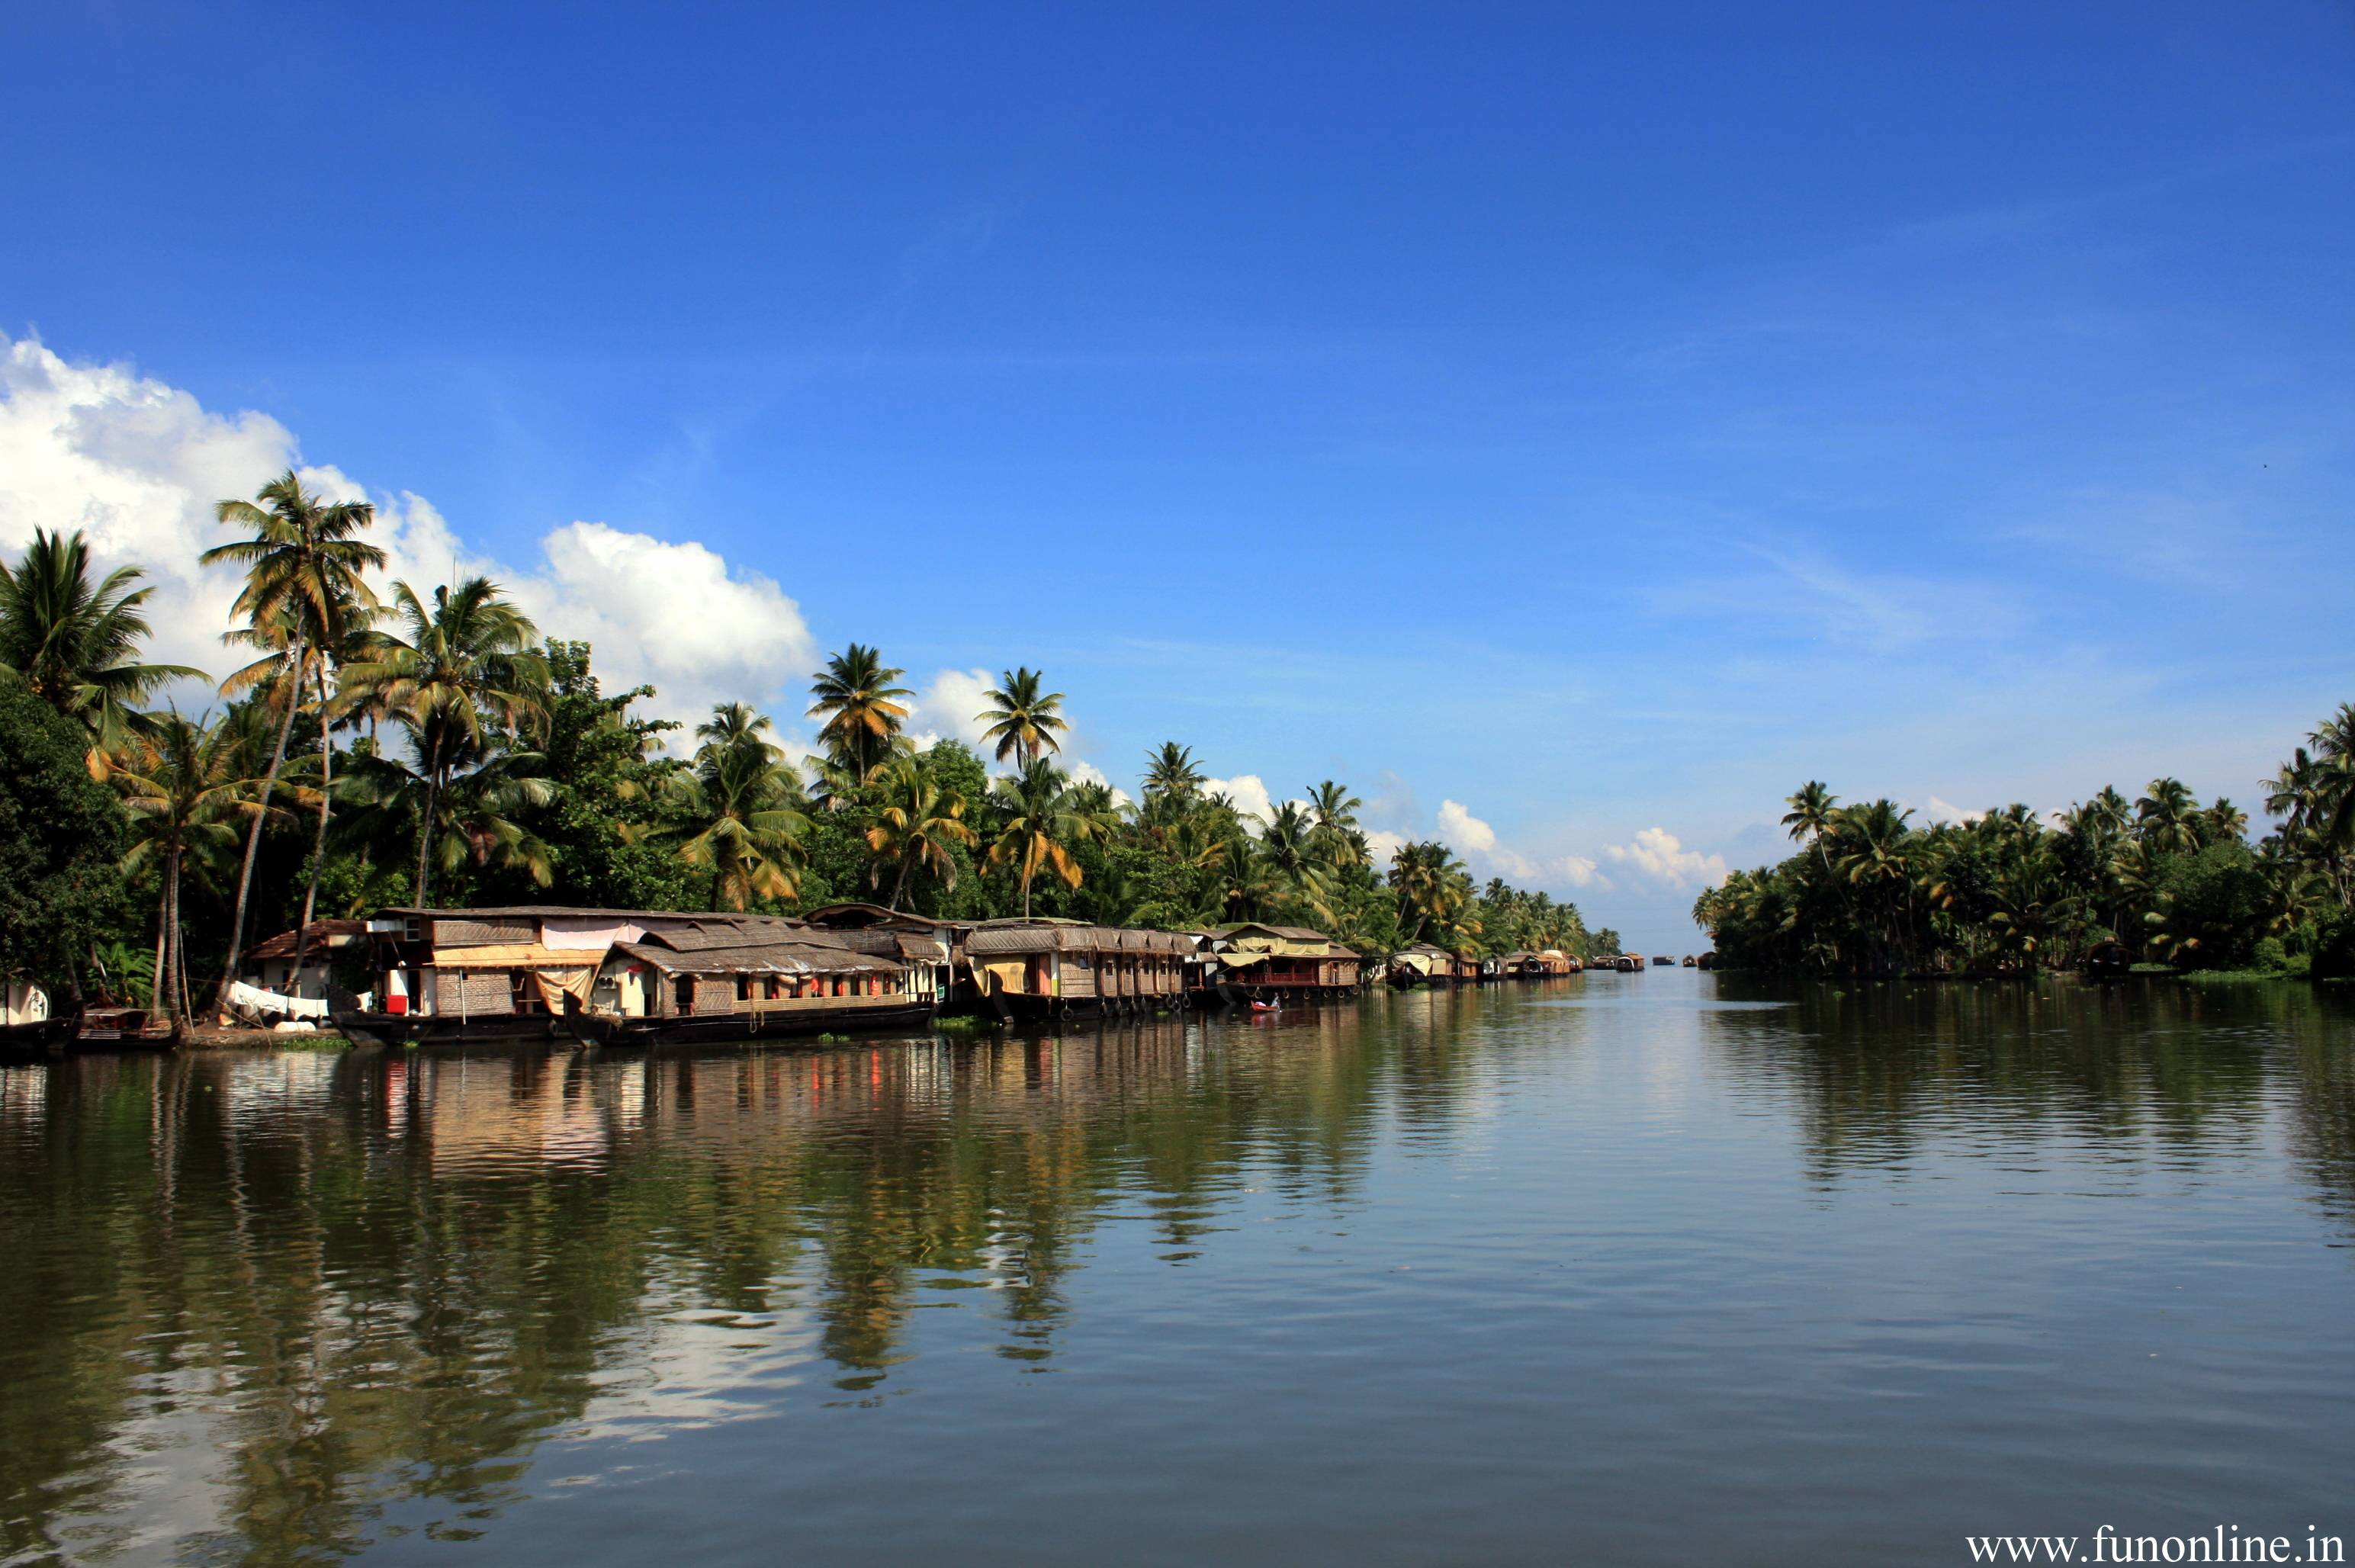 kerala wallpapers download eco friendly kerala hd wallpapers for free